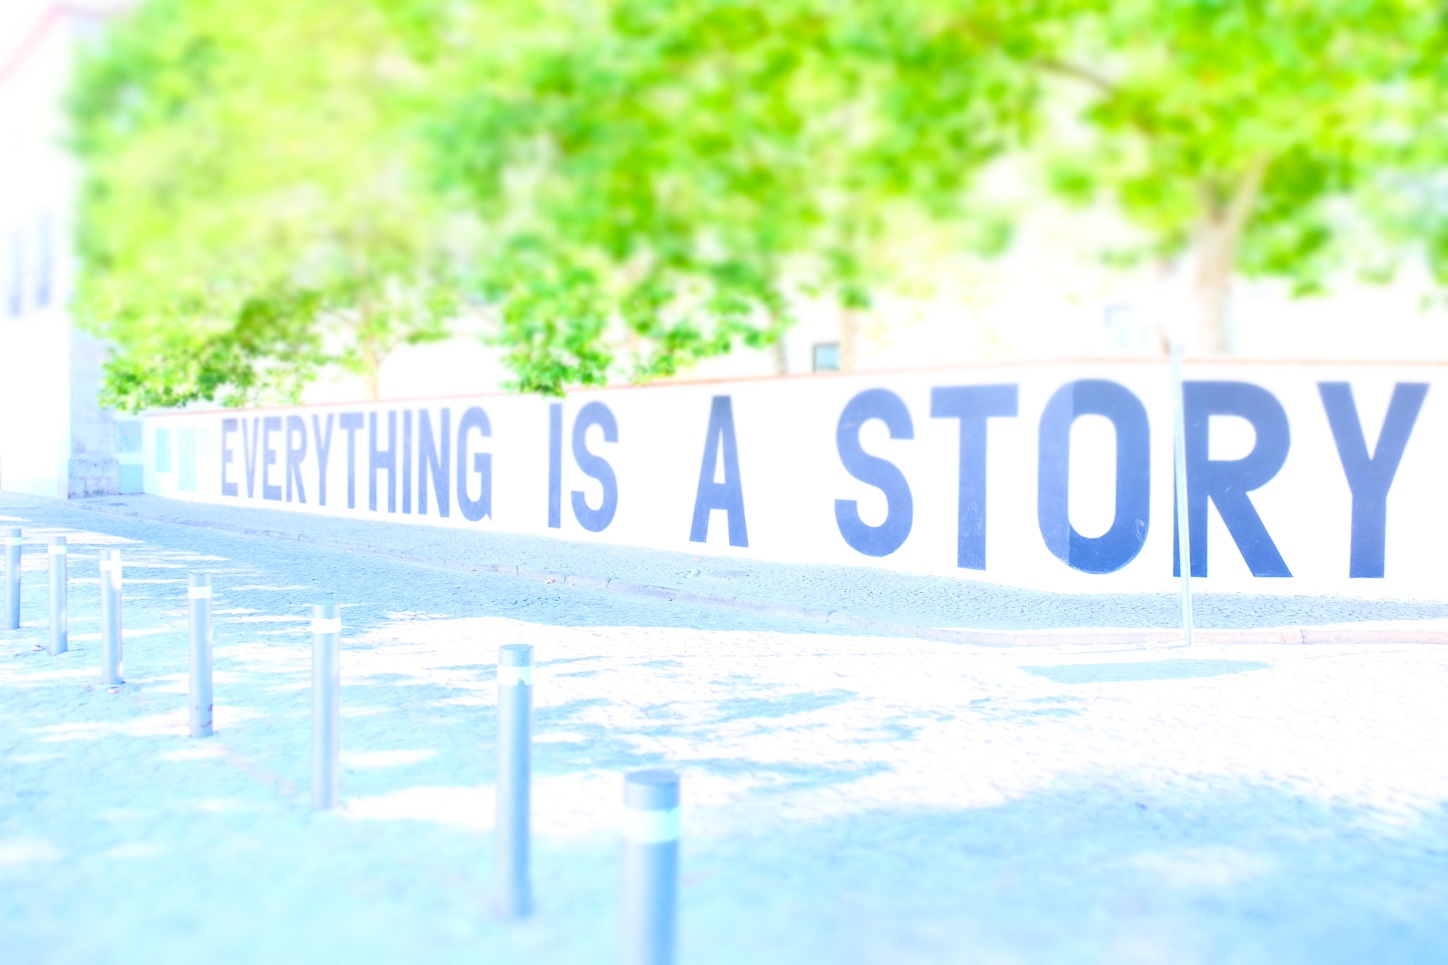 EVERYTHING IS A STORY by Carine